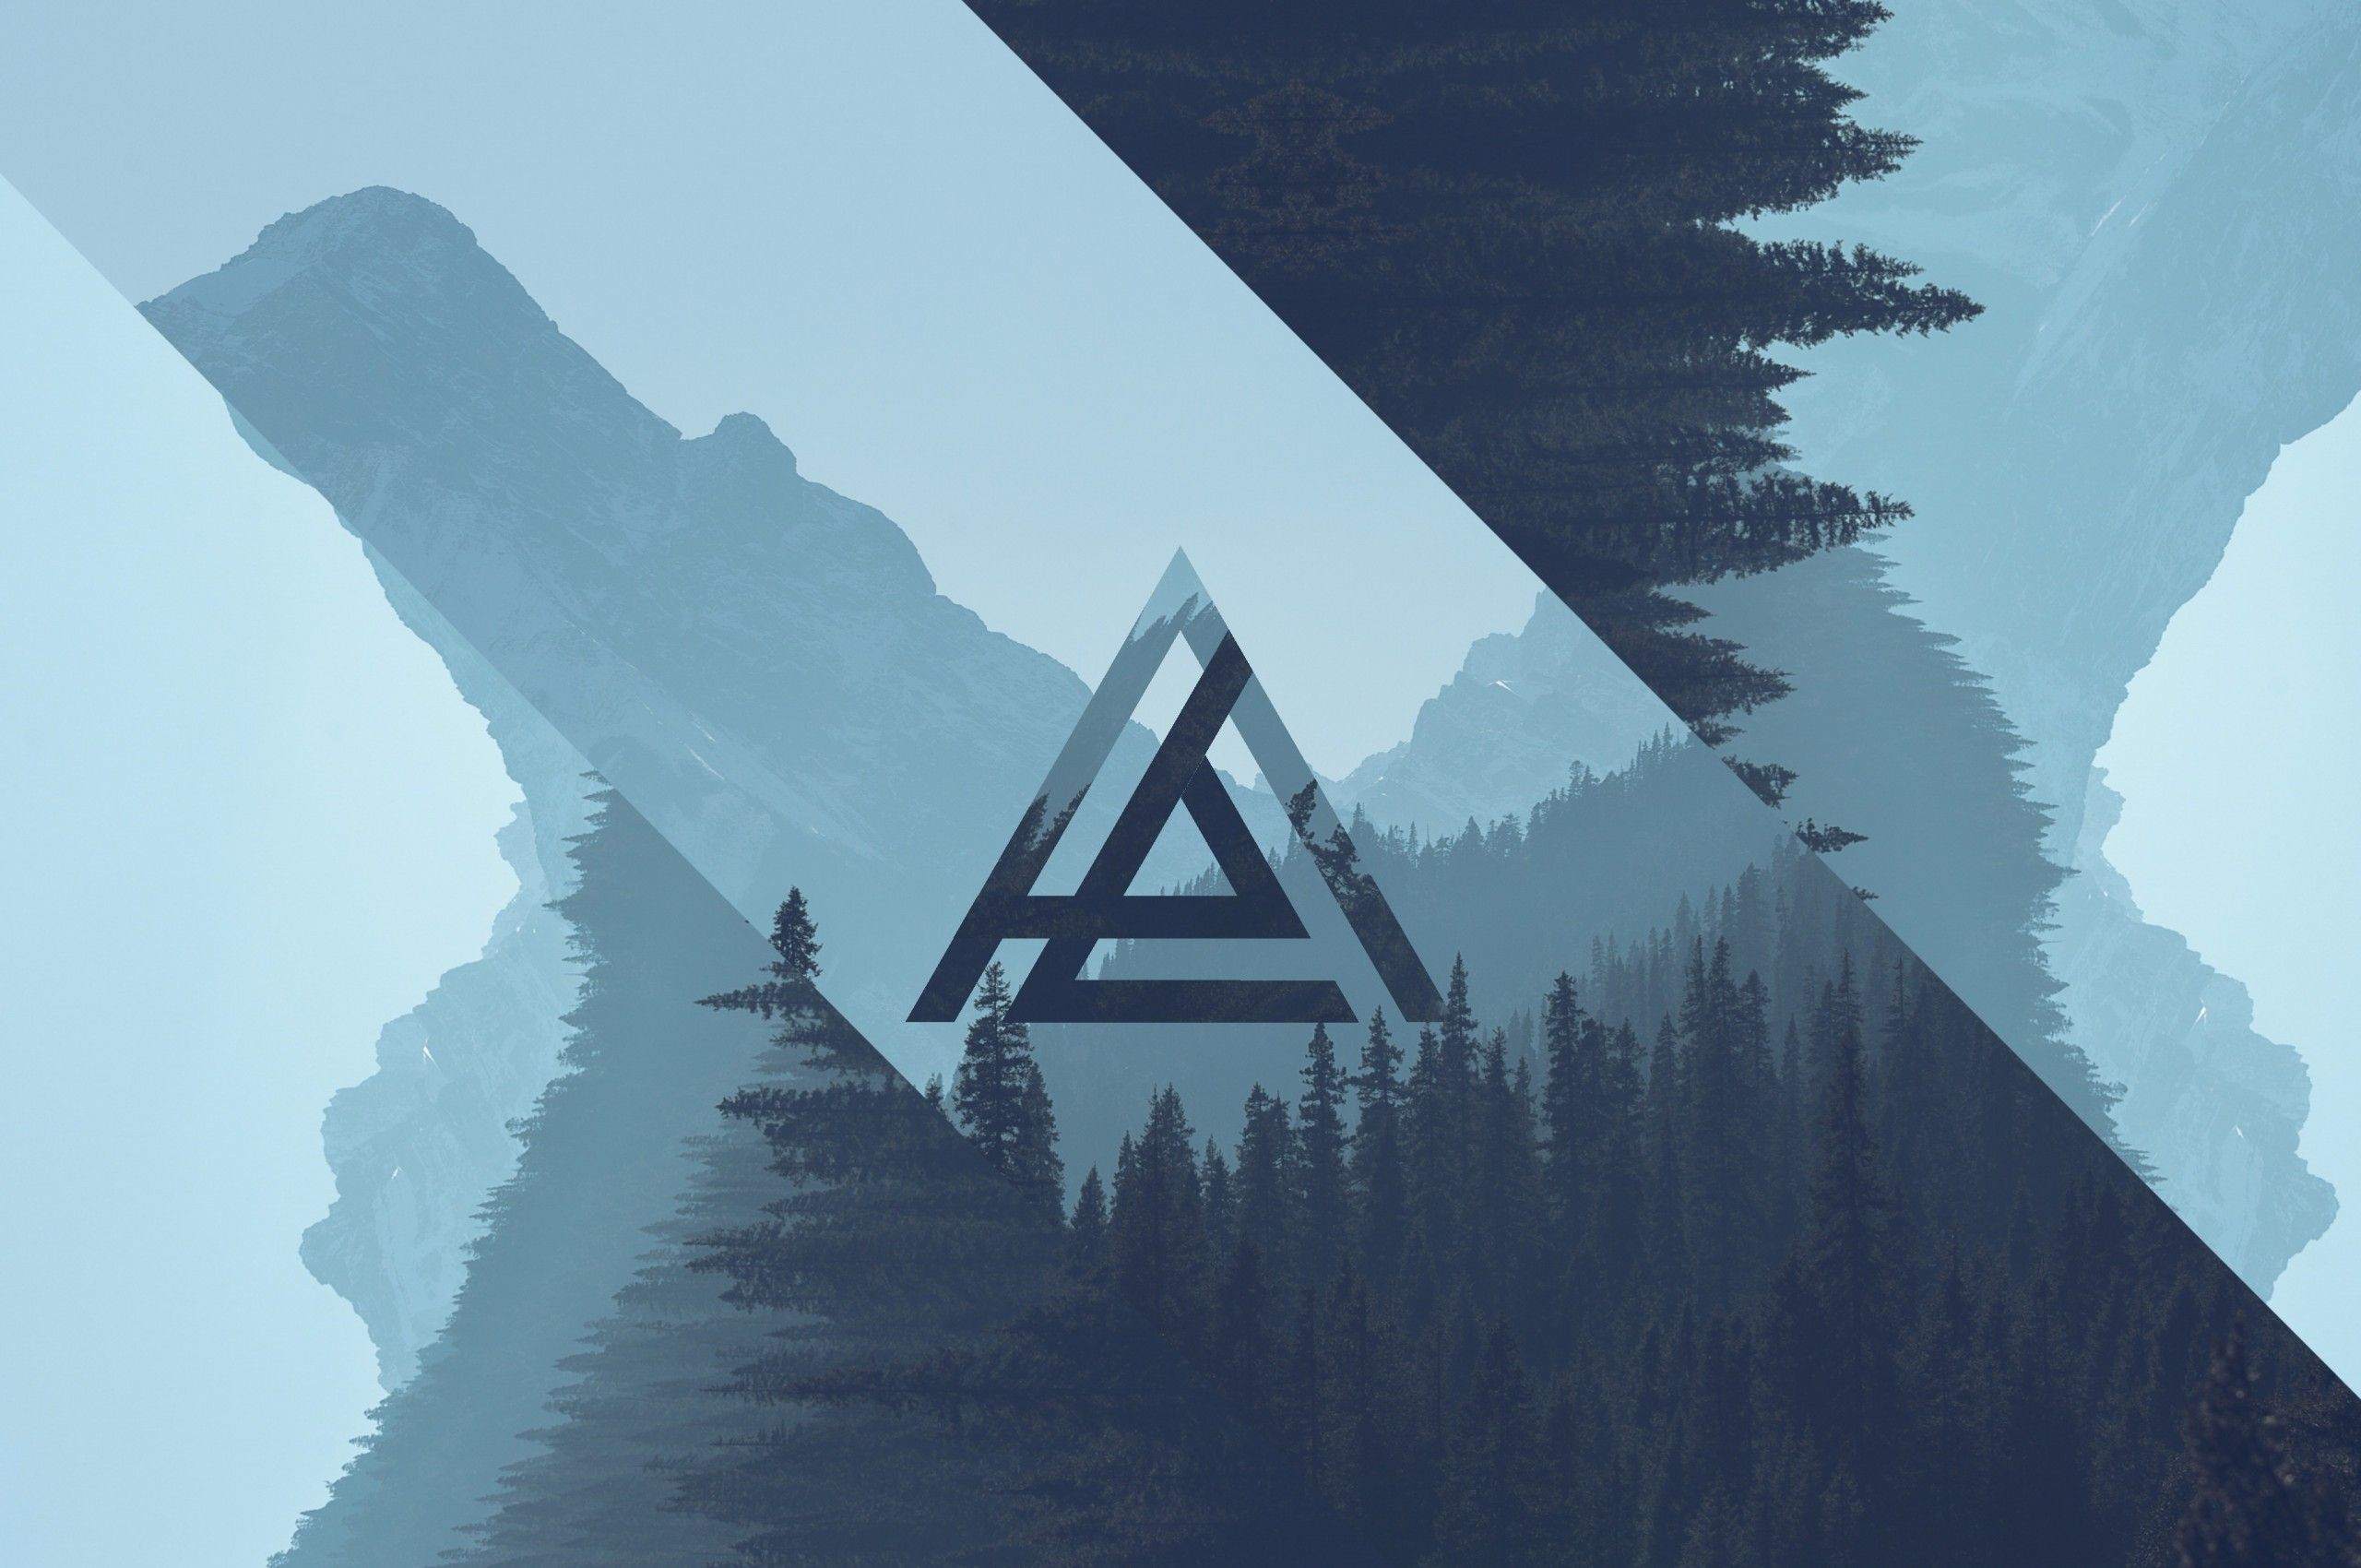 2560x1700 Download 2560x1700 Triangle, Design, Landscape Wallpapers ...